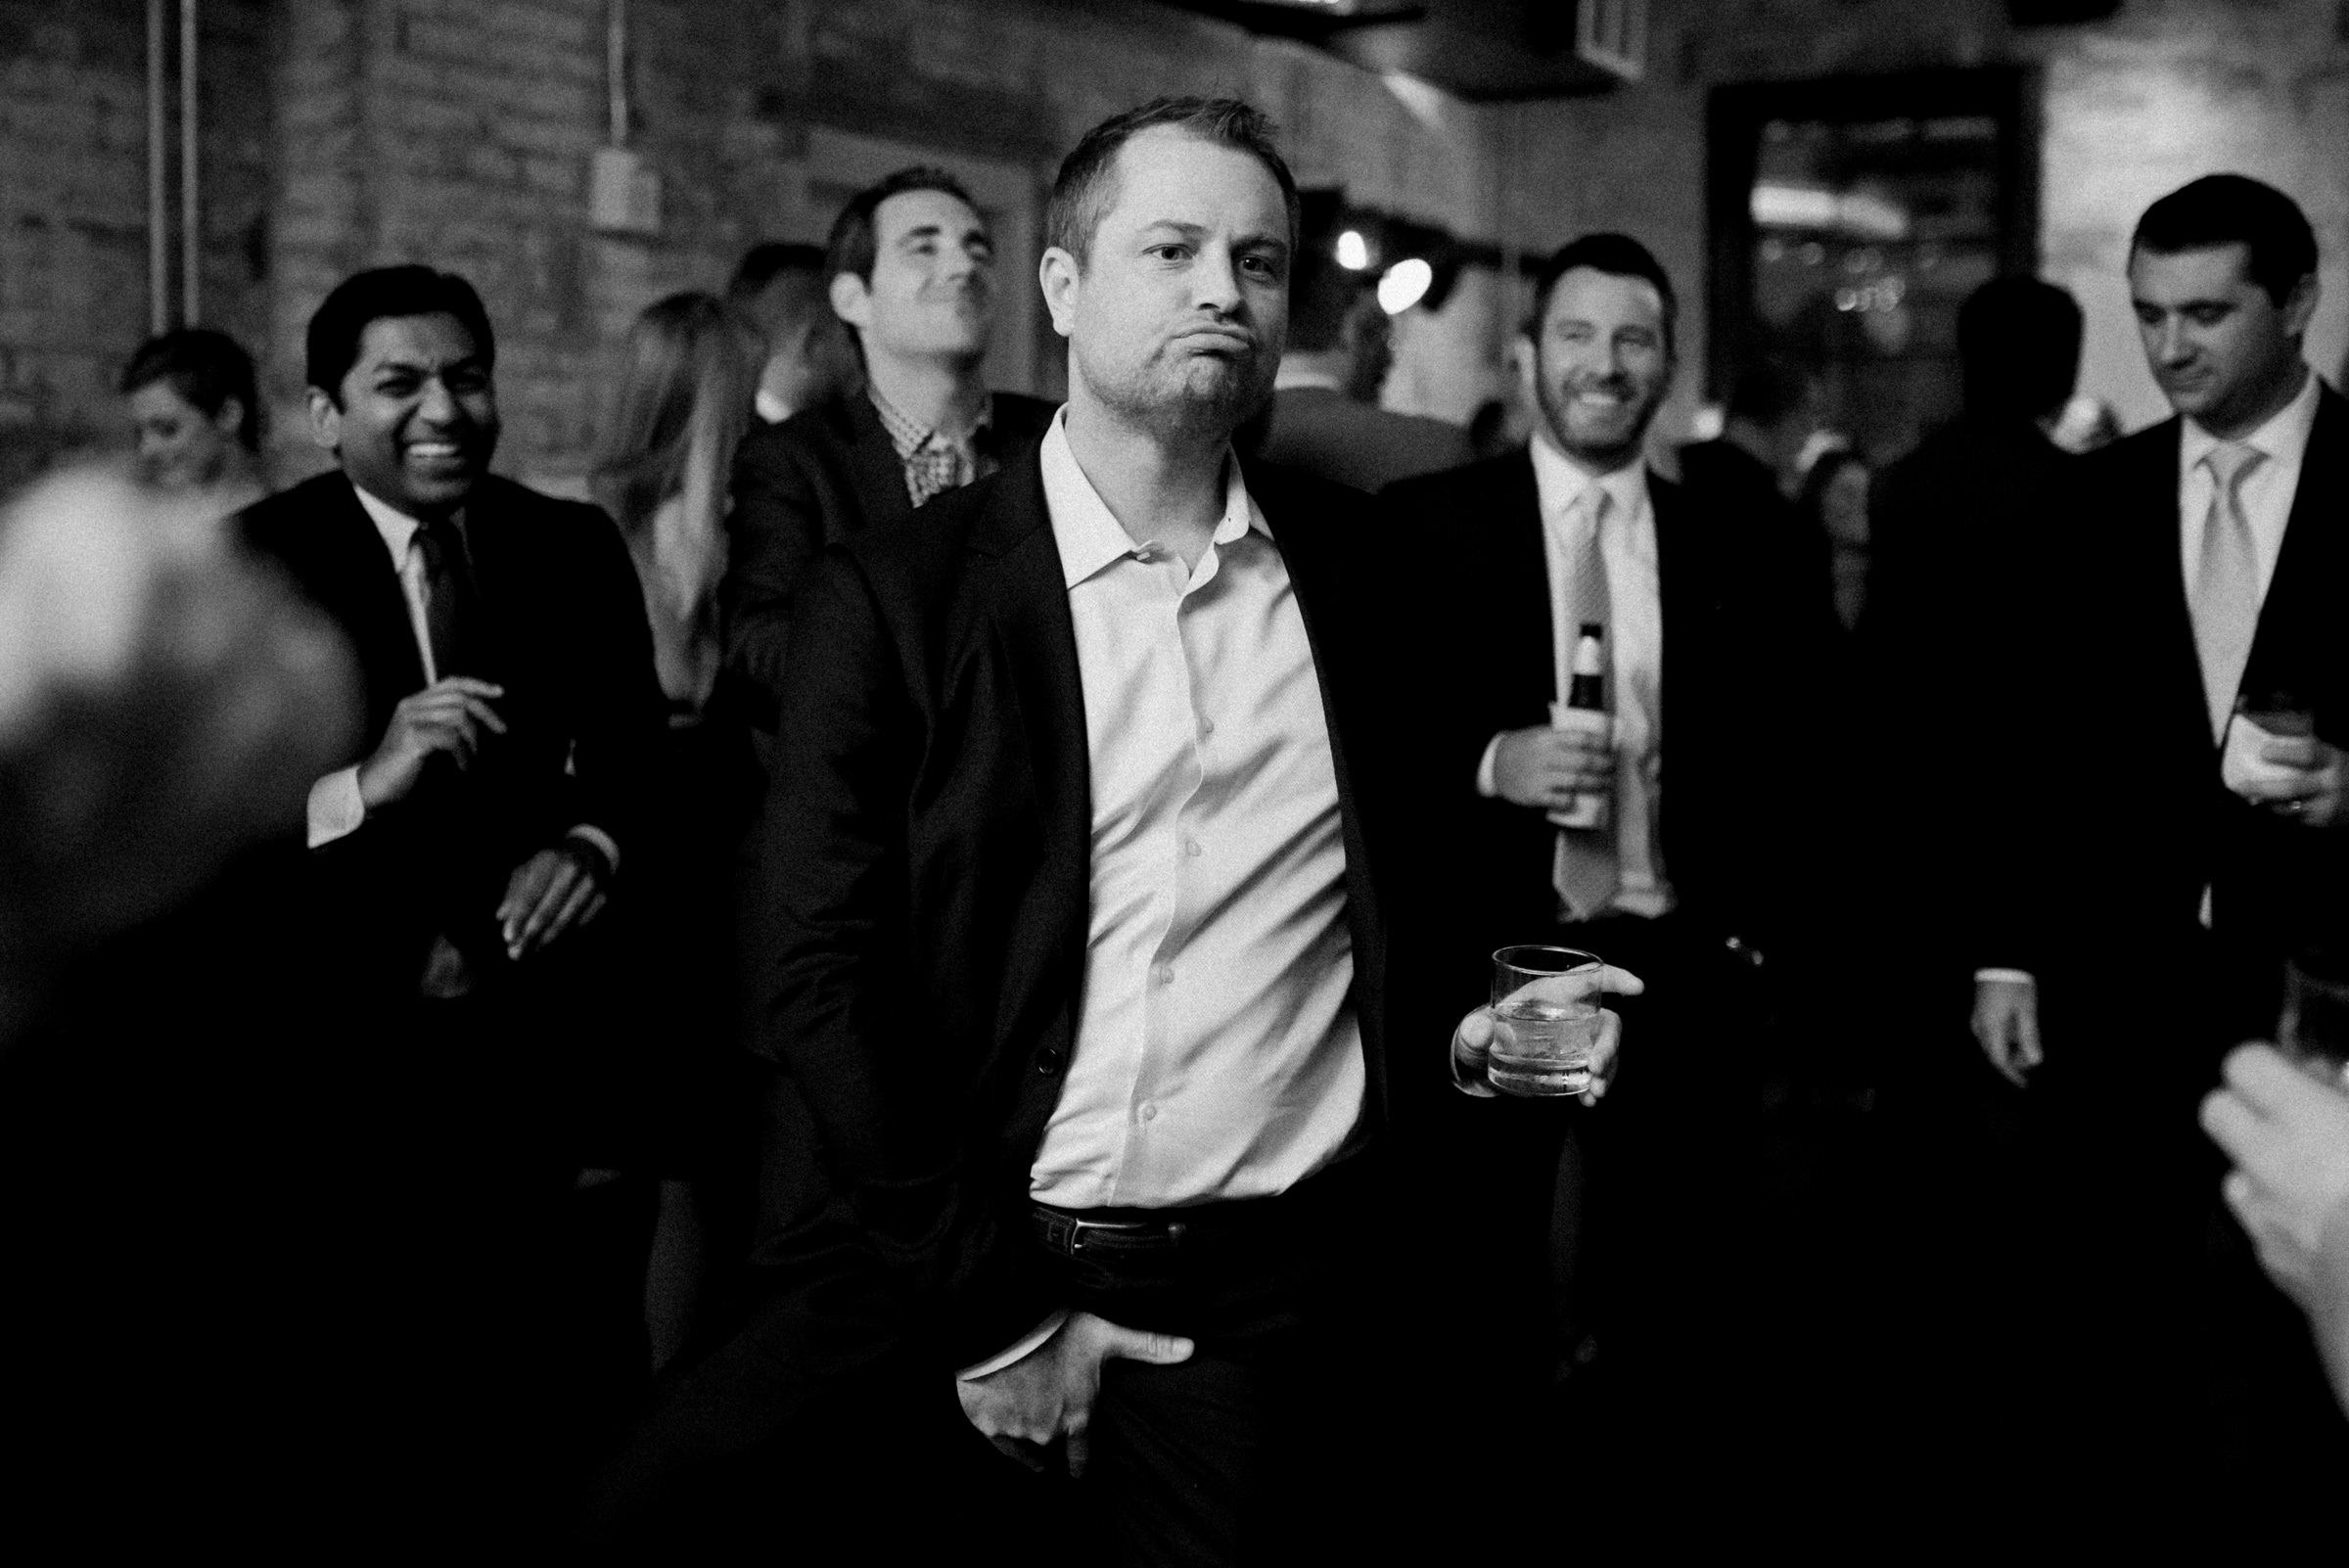 groom dancing the night away at the reception with his groomsmen-new orleans-austin-houston-wedding photogra- photo by Dark Roux